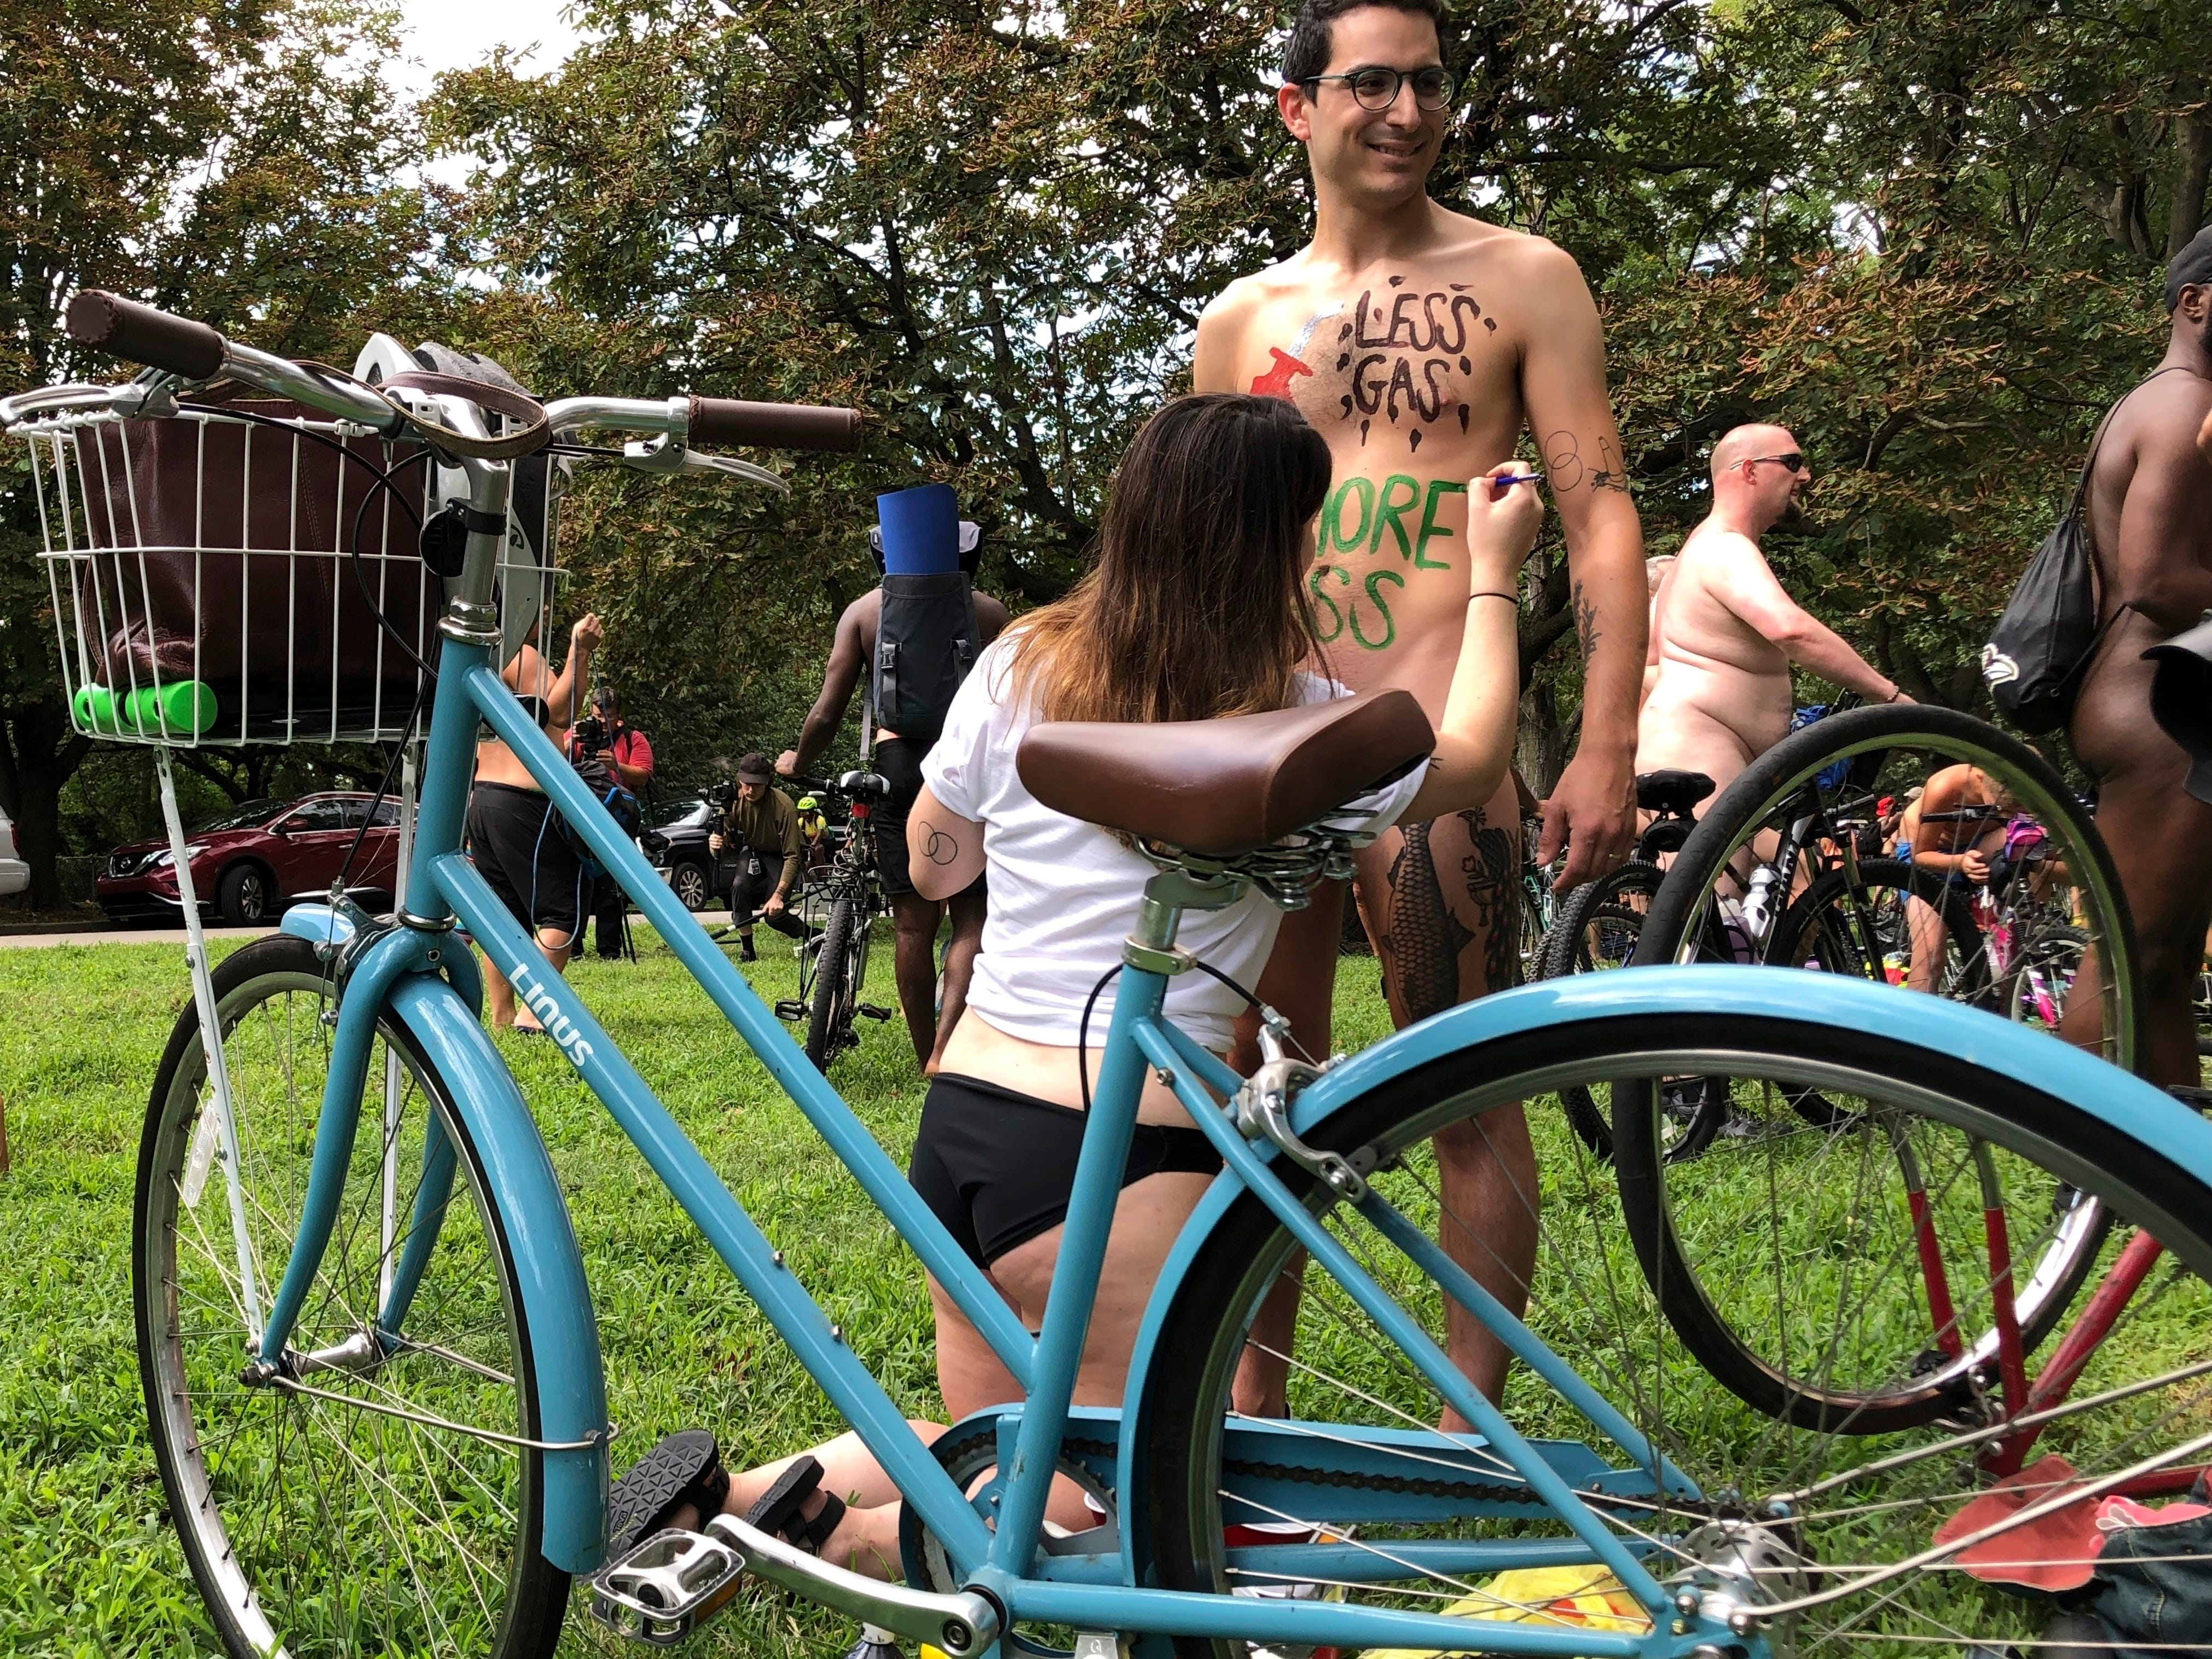 Naked bike rides around the world lay bare for fun, advocacy